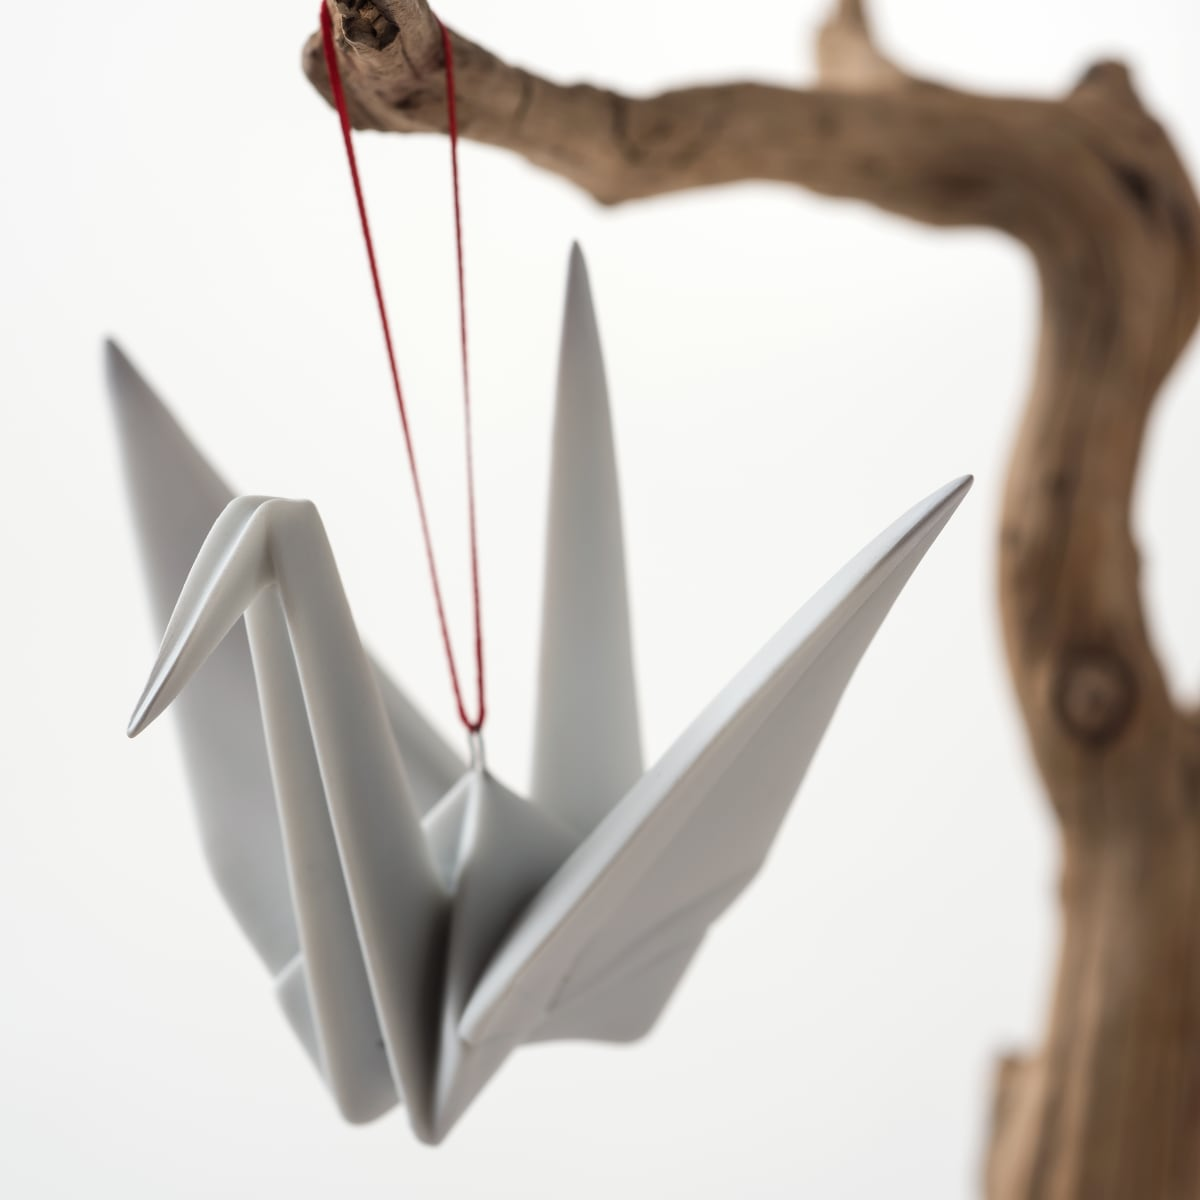 Porcelain crane origami ornament at the Lotus Shop